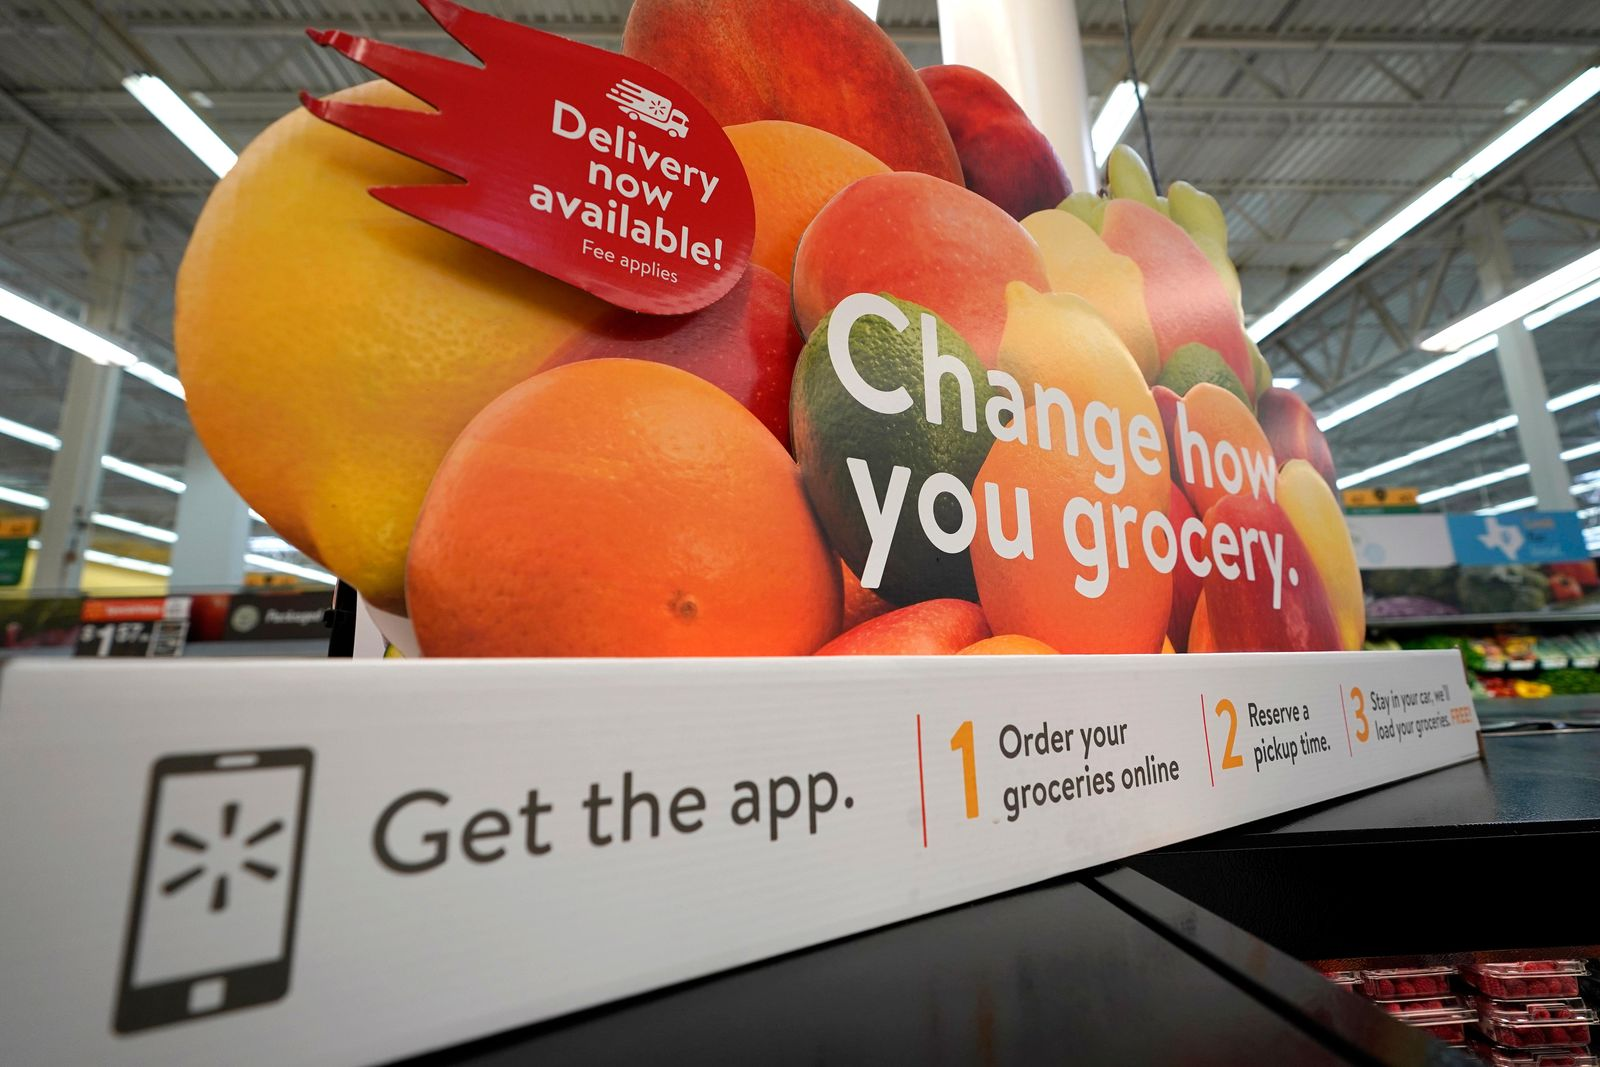 In this Nov. 9, 2018, file photo a sign promotes online and home delivery of groceries at a Walmart Supercenter  in Houston. Retailers are taking back some control of the store experience with smart phone app features that let customers do things like scan and pay and download digital maps. (AP Photo/David J. Phillip, File)